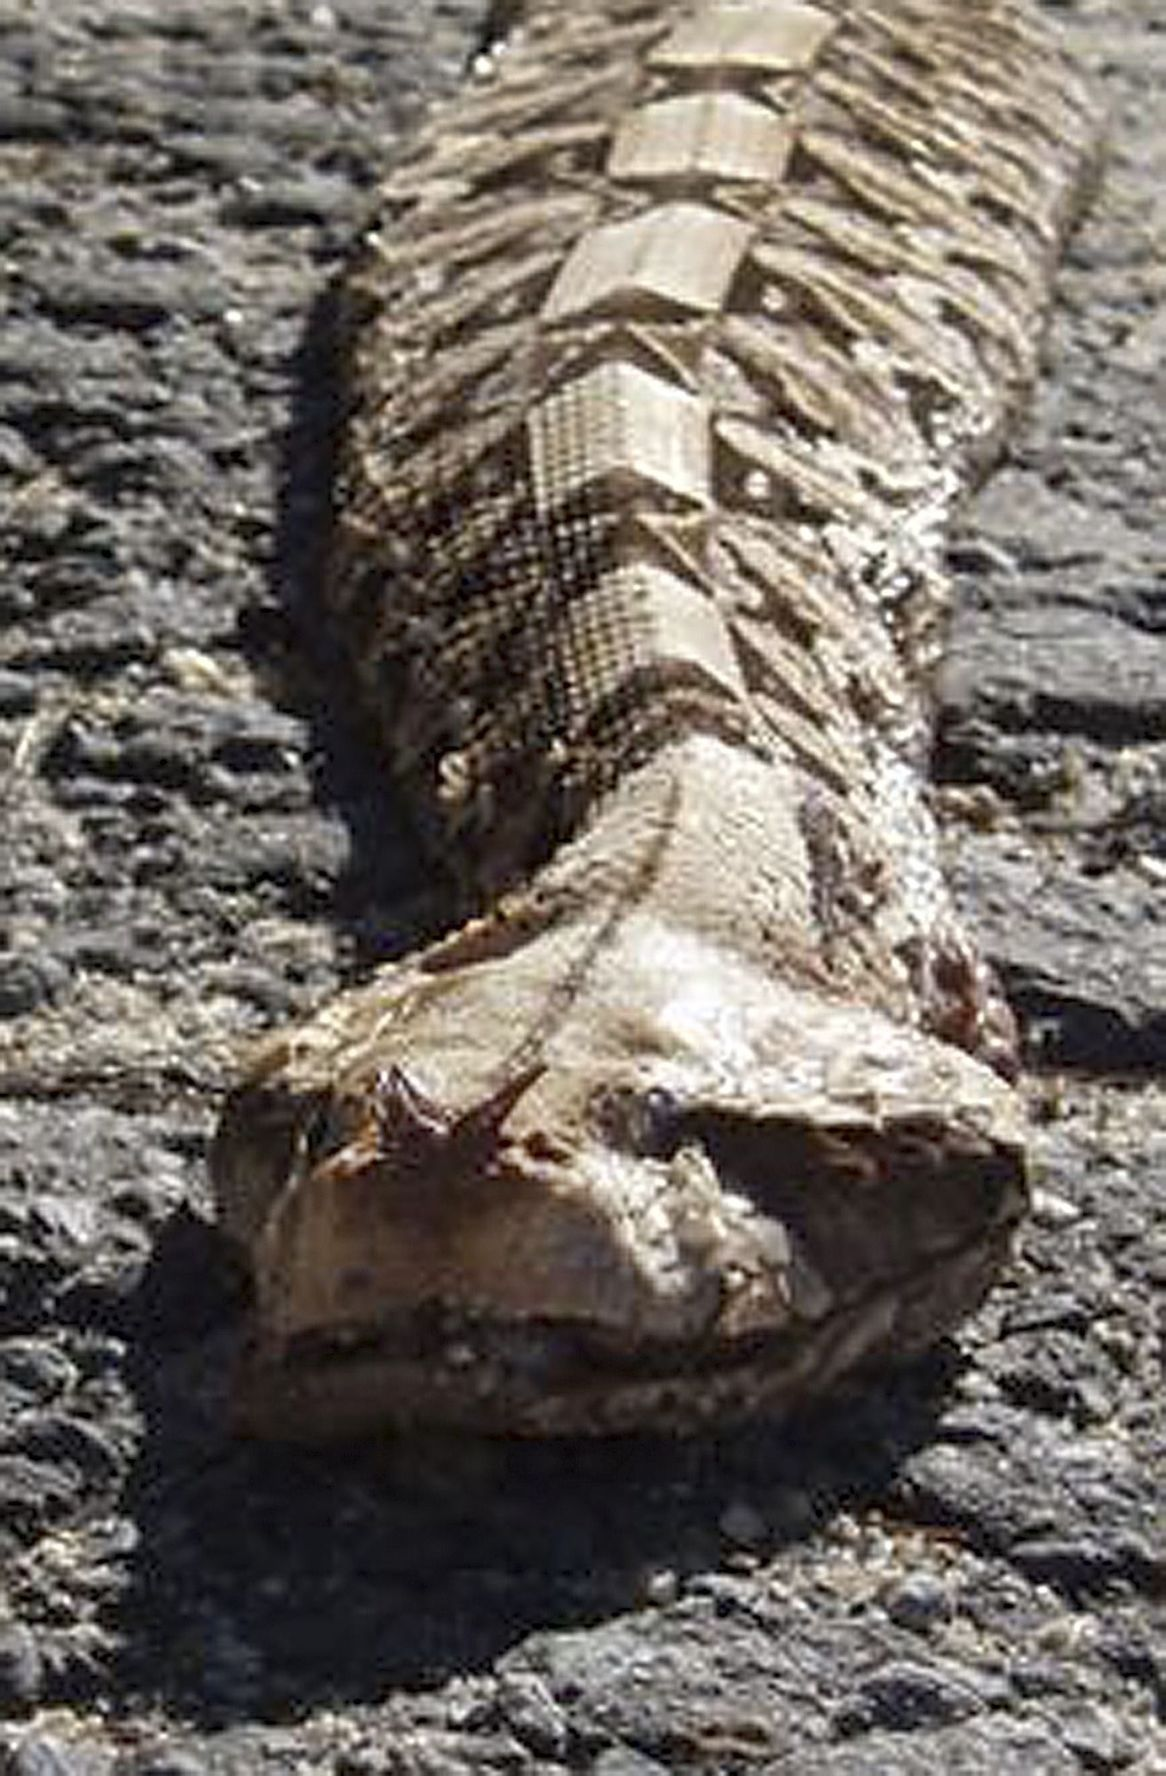 Deadly snake story could in fact be fish tale